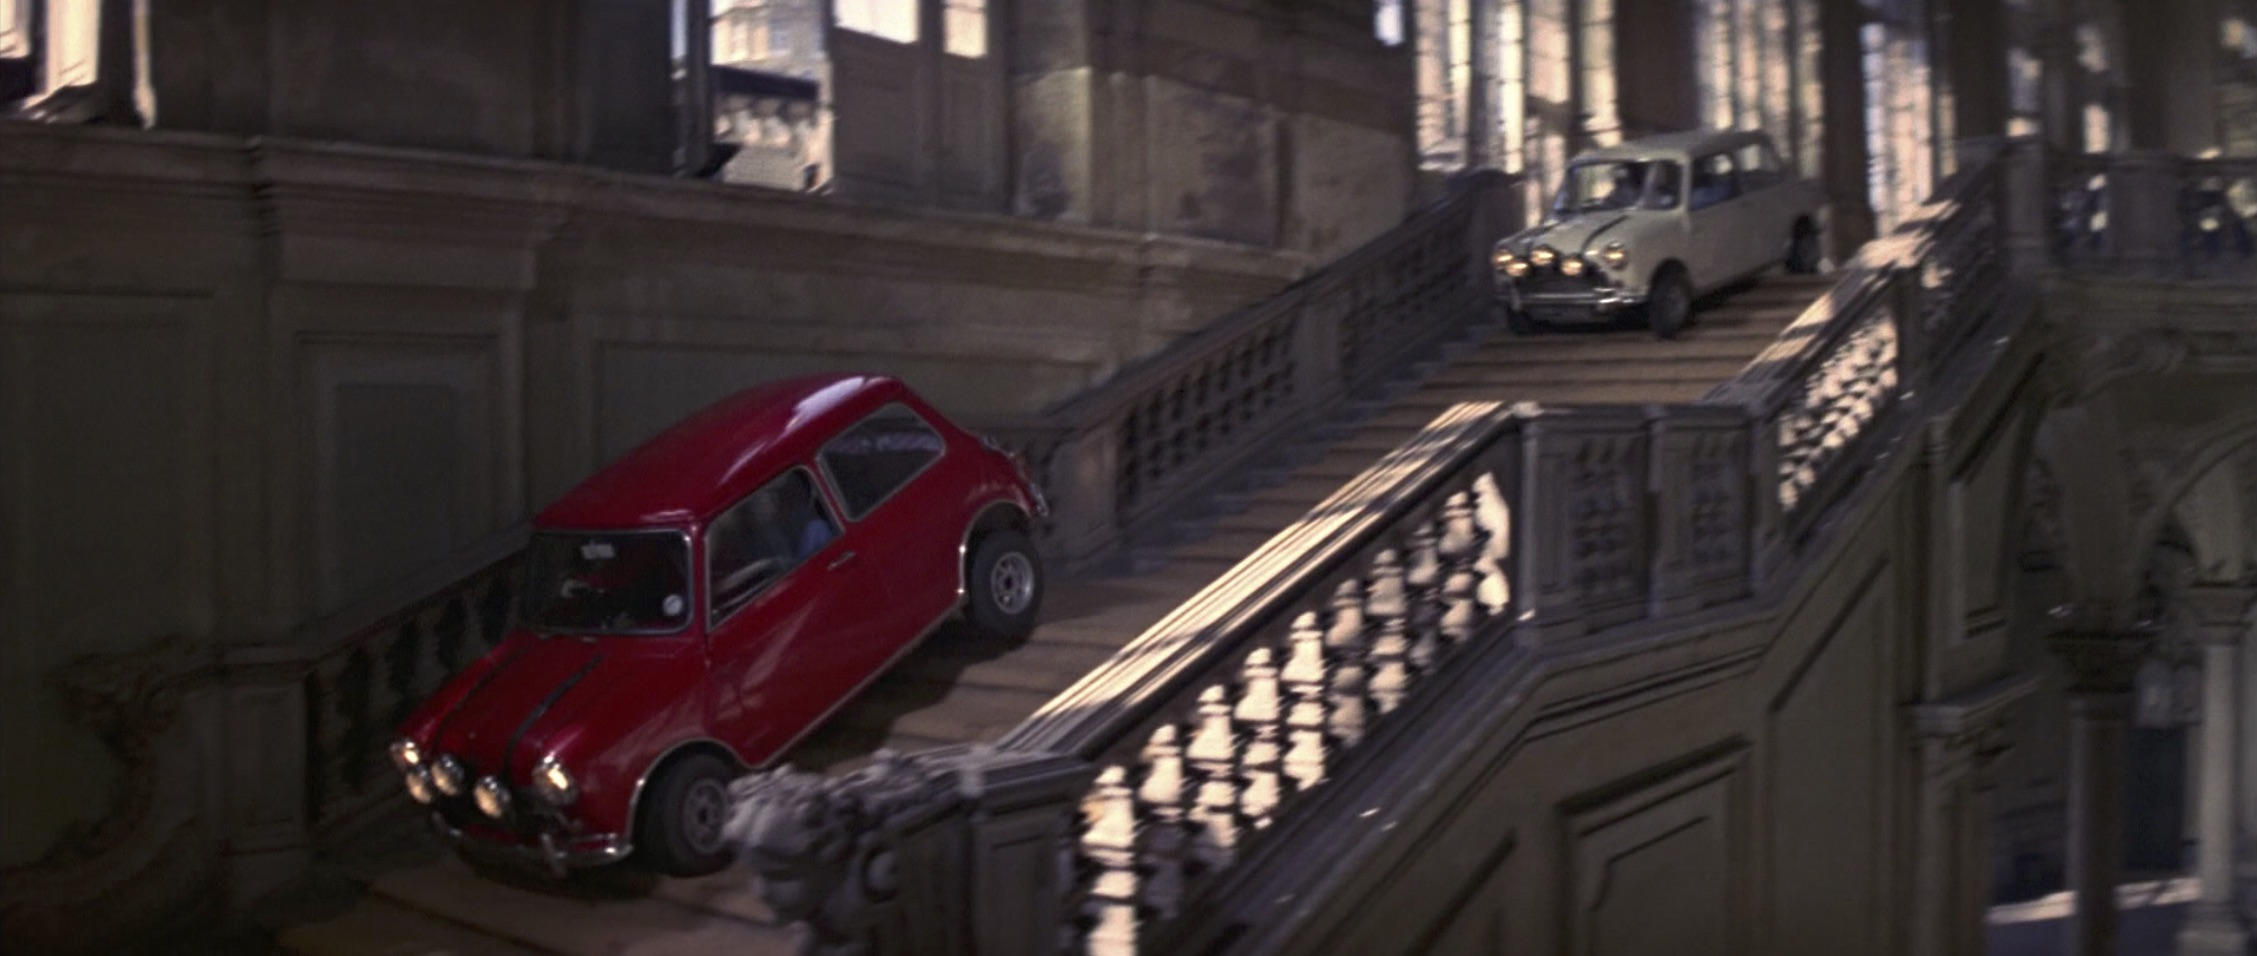 The Italian Job 1969 chase scene